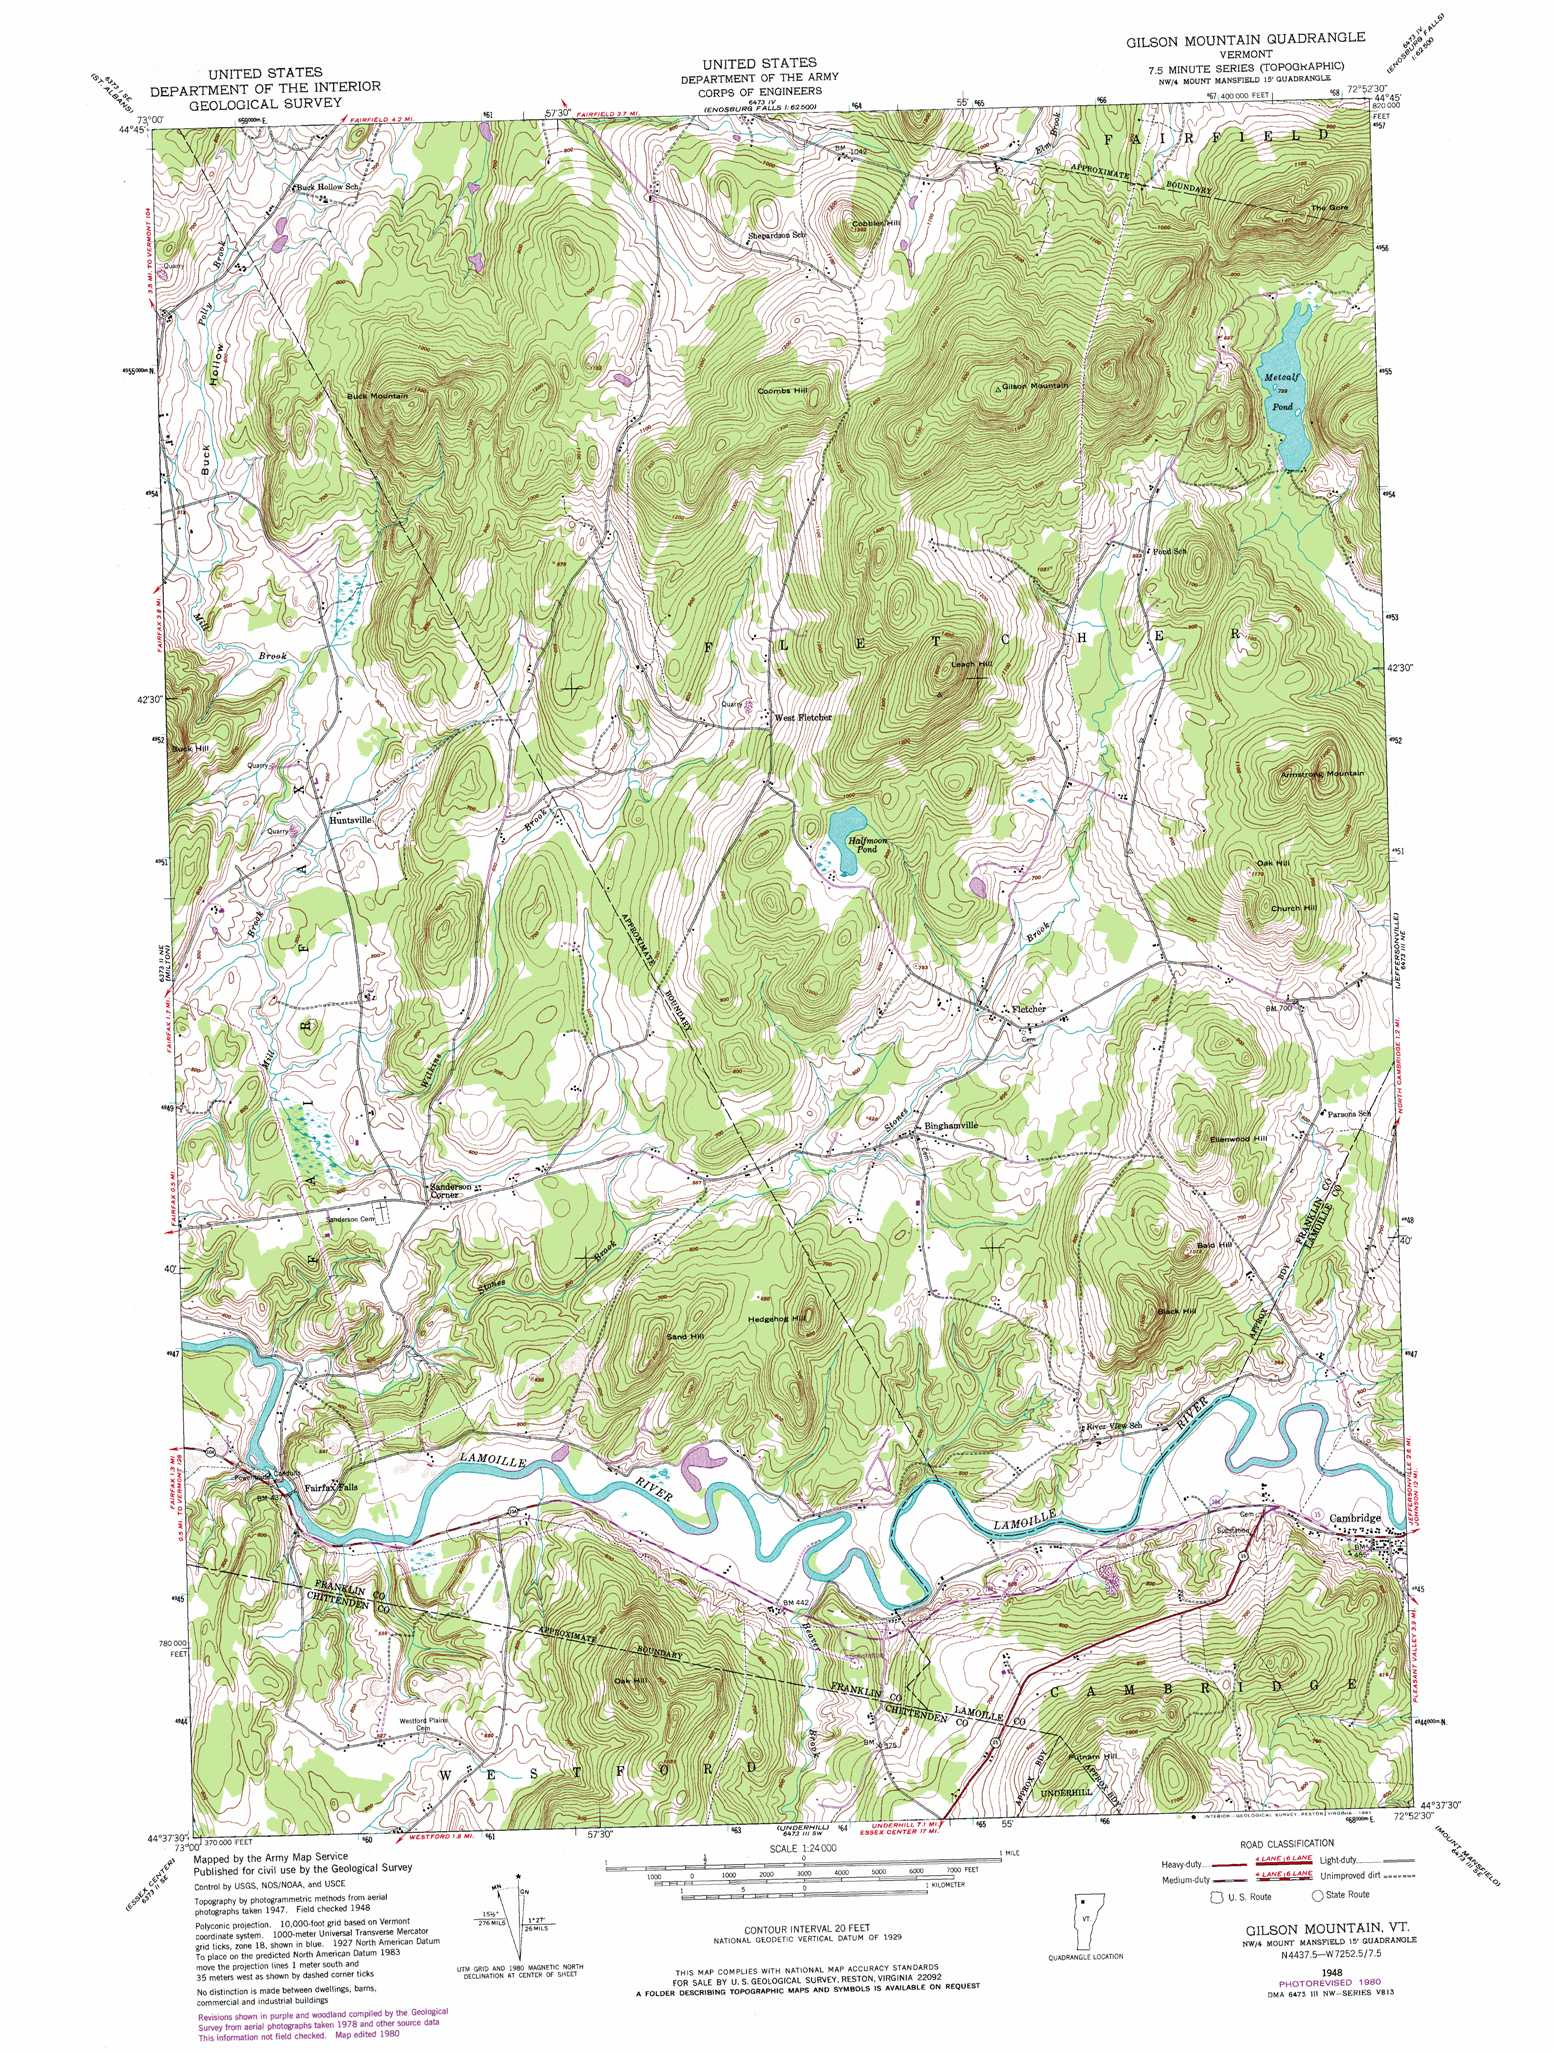 Gilson Mountain Topographic Map VT  USGS Topo Quad 44072f8